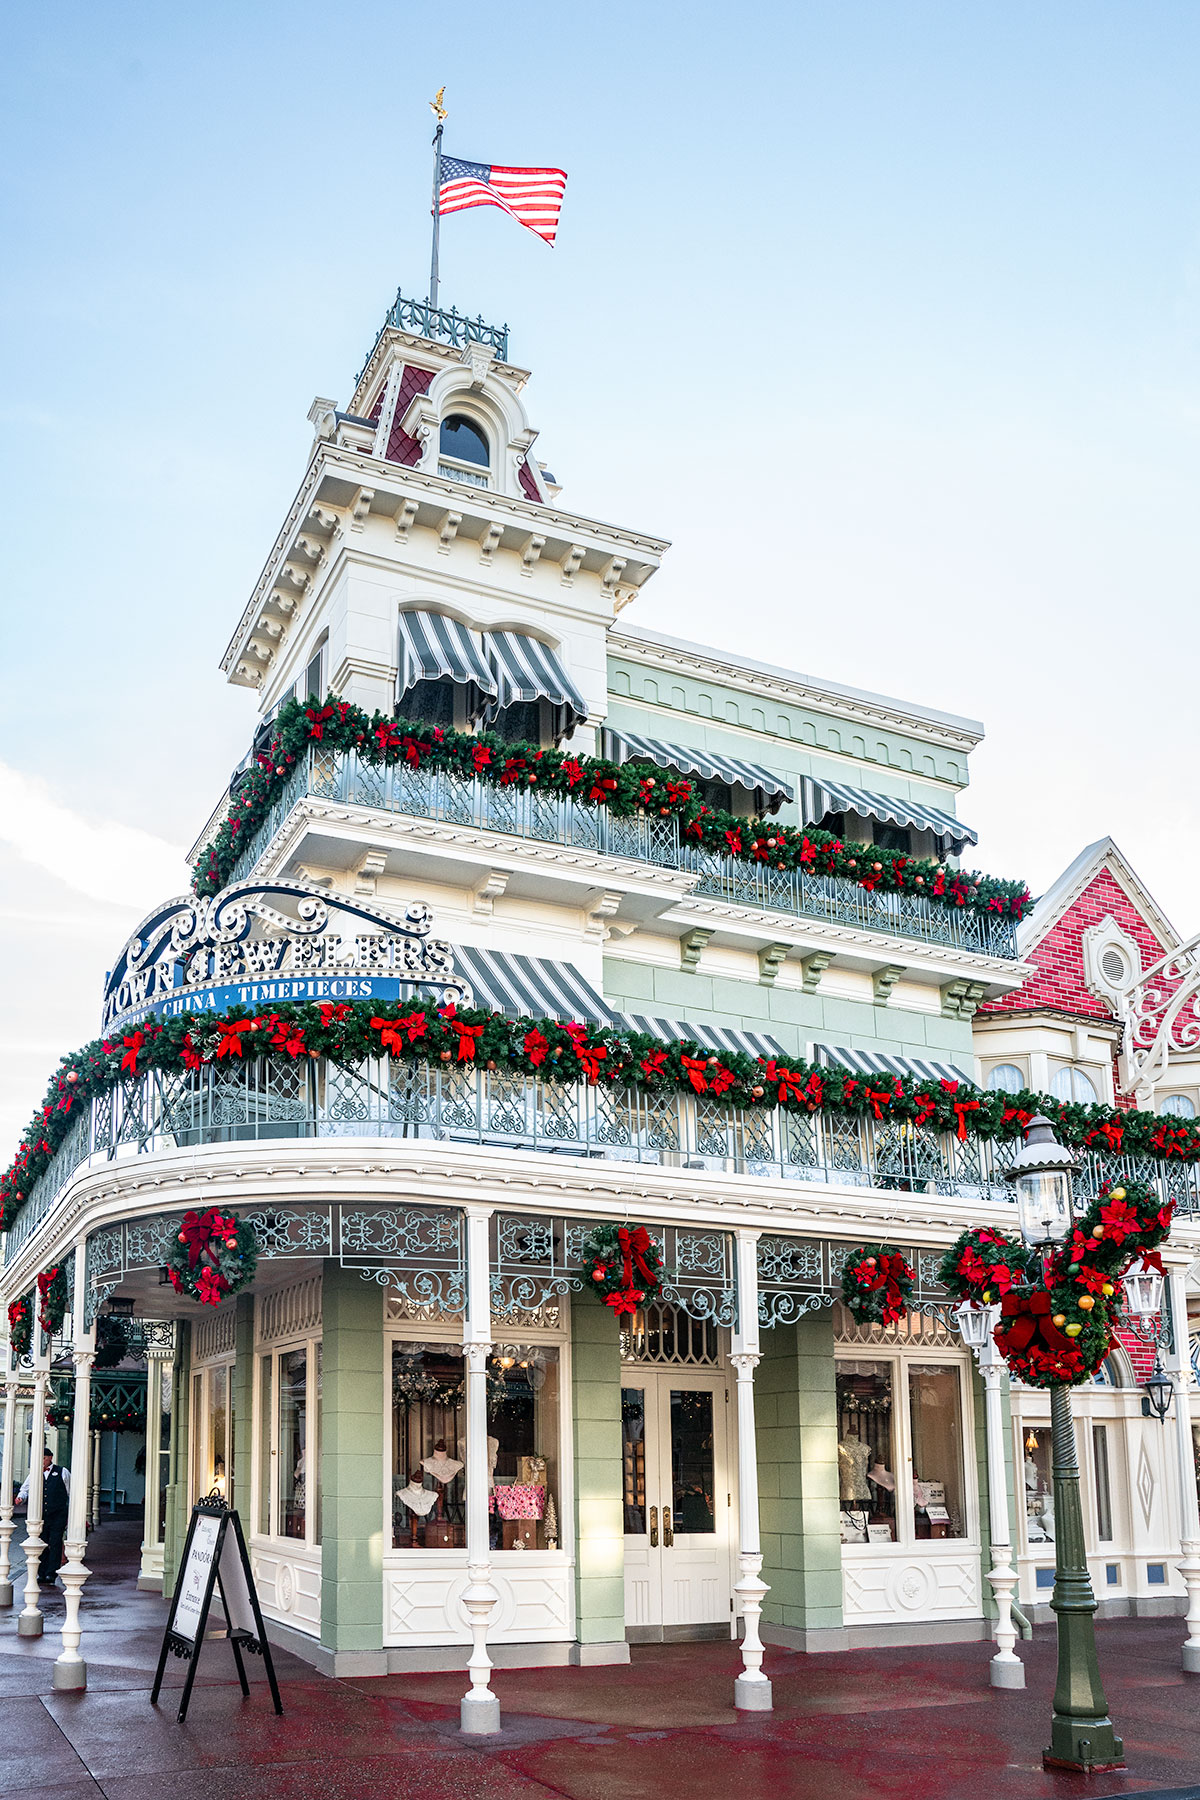 Christmas-on-Main-Street-Magic-Kingdom